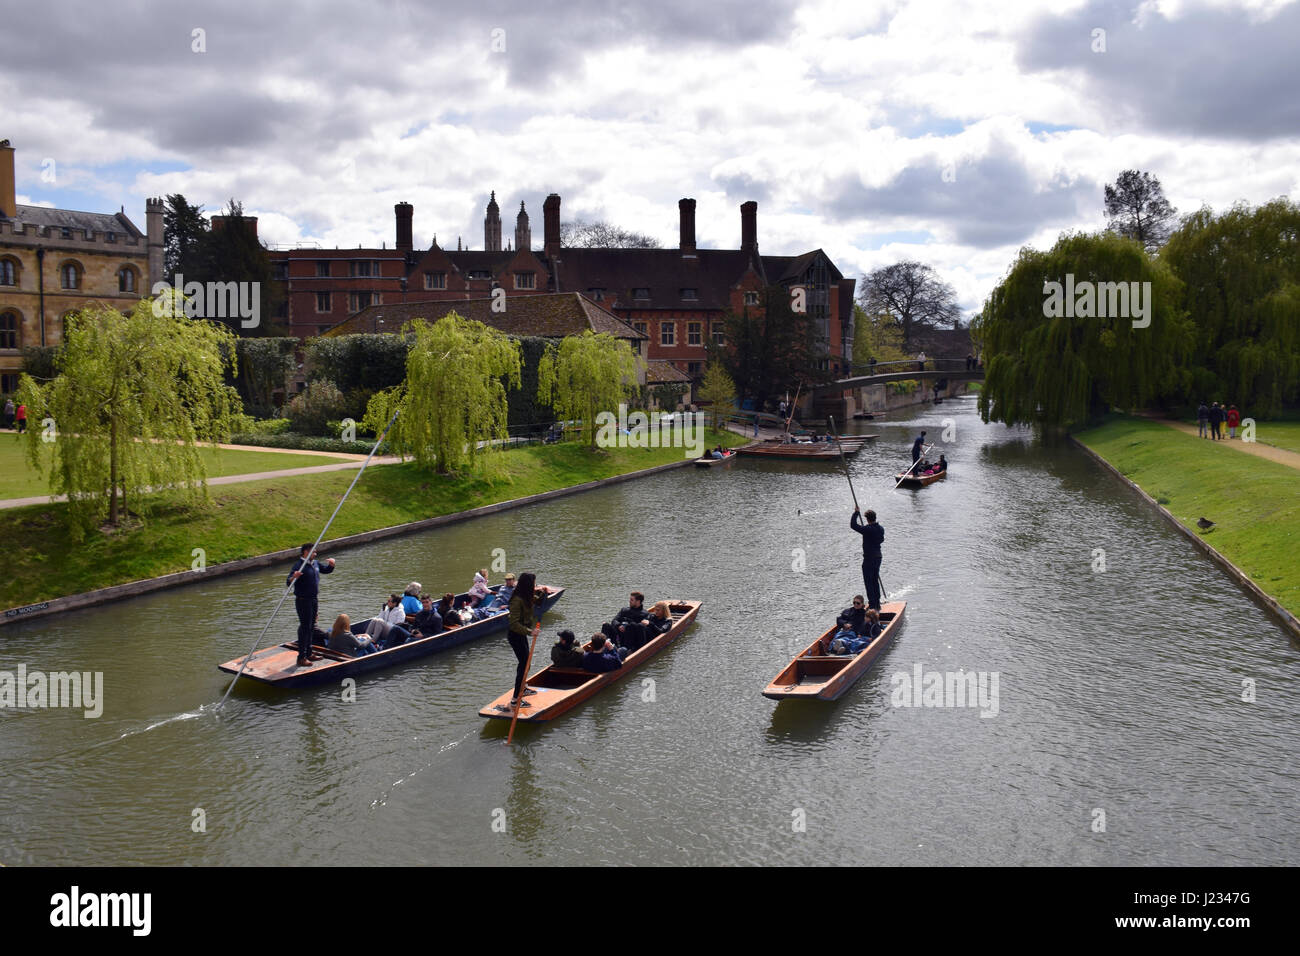 Punting on River Cam, Cambridge - Stock Image